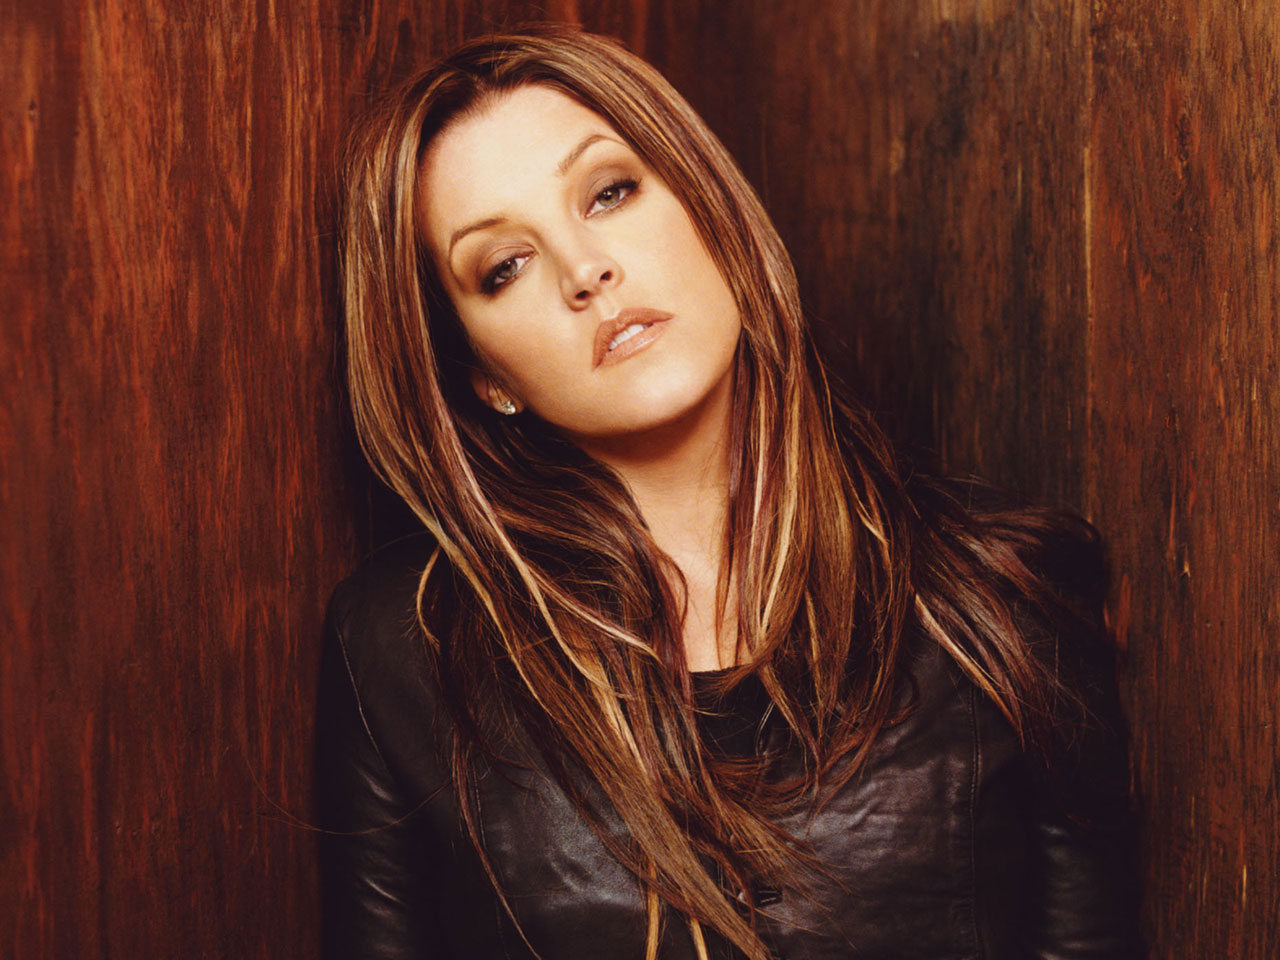 LISA MARIE PRESLEY